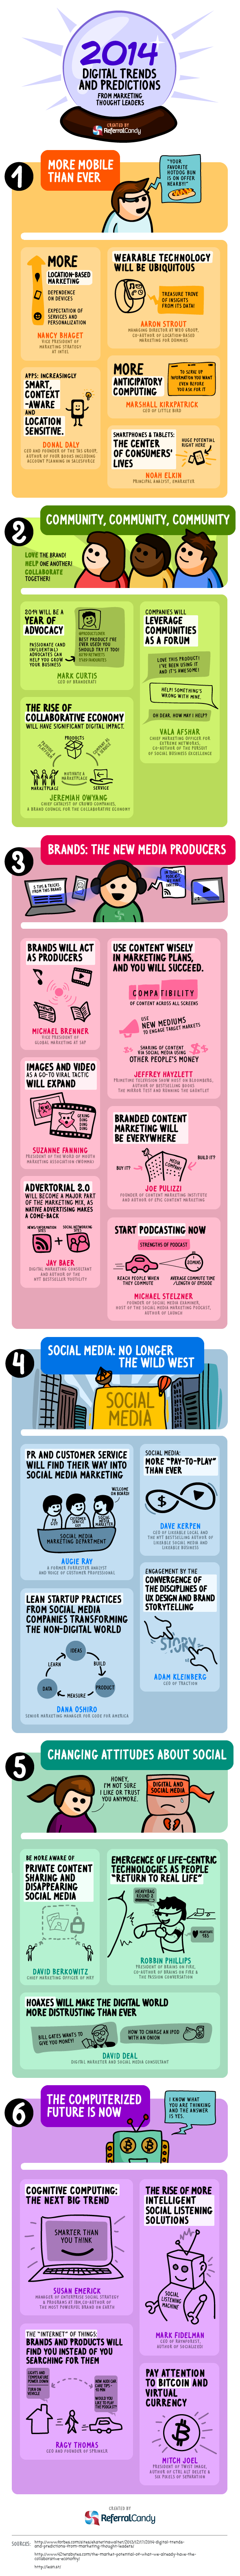 2014 digital trends predictions marketing infographic